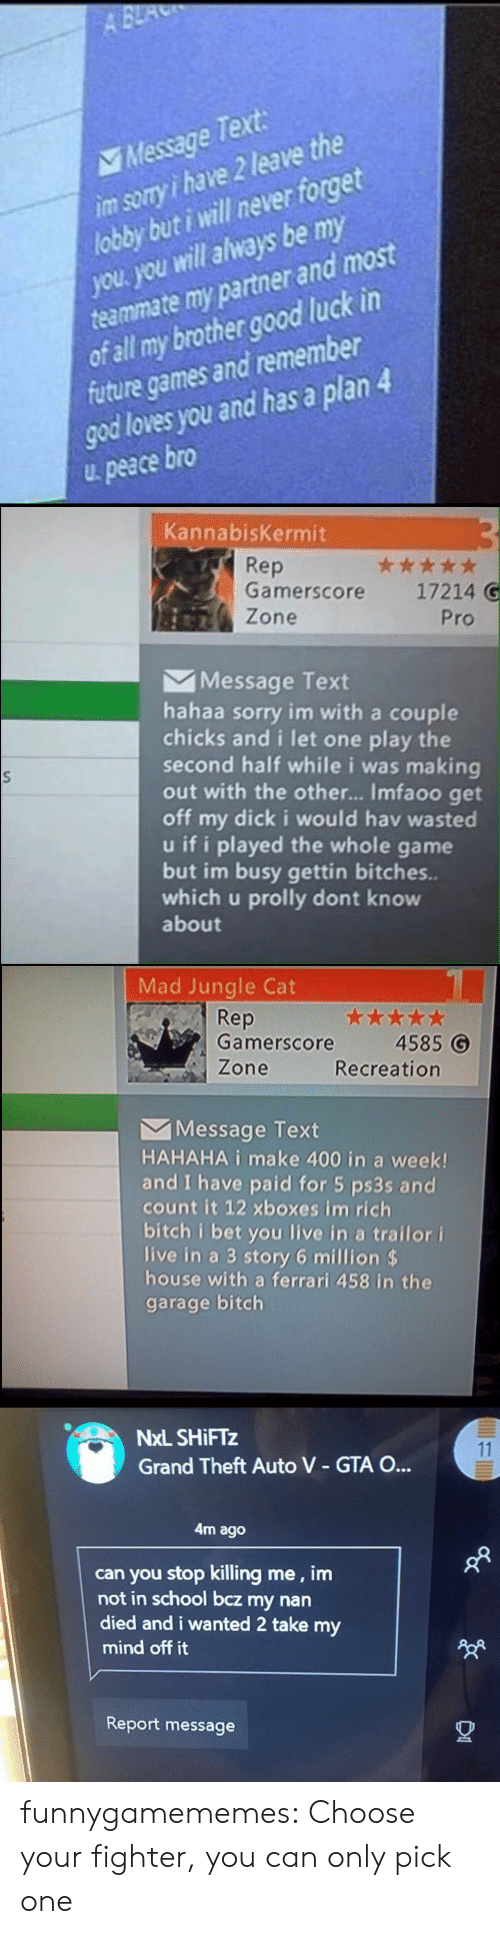 Choose Your: A BE  Message Text  im sory i have 2 leave the  lobby but i will never forget  you. you will always be my  teammate my partner and most  of all my brother good luck in  future games and remember  god loves you and has a plan 4  peace bro   KannabisKermit  Rep  Gamerscore  ***  17214 G  Zone  Pro  Message Text  hahaa sorry im with a couple  chicks and i let one play the  second half while i was making  out with the othe... Imfaoo get  off my dick i would hav wasted  u if i played the whole game  but im busy gettin bitches..  which u prolly dont know  about   Mad Jungle Cat  Rep  Gamerscore  4585 G  Zone  Recreation  Message Text  HAHAHA i make 400 in a week!  and I have paid for 5 ps3s and  count it 12 xboxes im rich  bitch i bet you live in a trailor i  live in a 3 story 6 million $  house with a ferrari 458 in the  garage bitch   NxL SHIFTZ  11  Grand Theft Auto V - GTA O...  4m ago  can you stop killing me, im  not in school bcz my nan  died and i wanted 2 take my  mind off it  Report message funnygamememes: Choose your fighter, you can only pick one